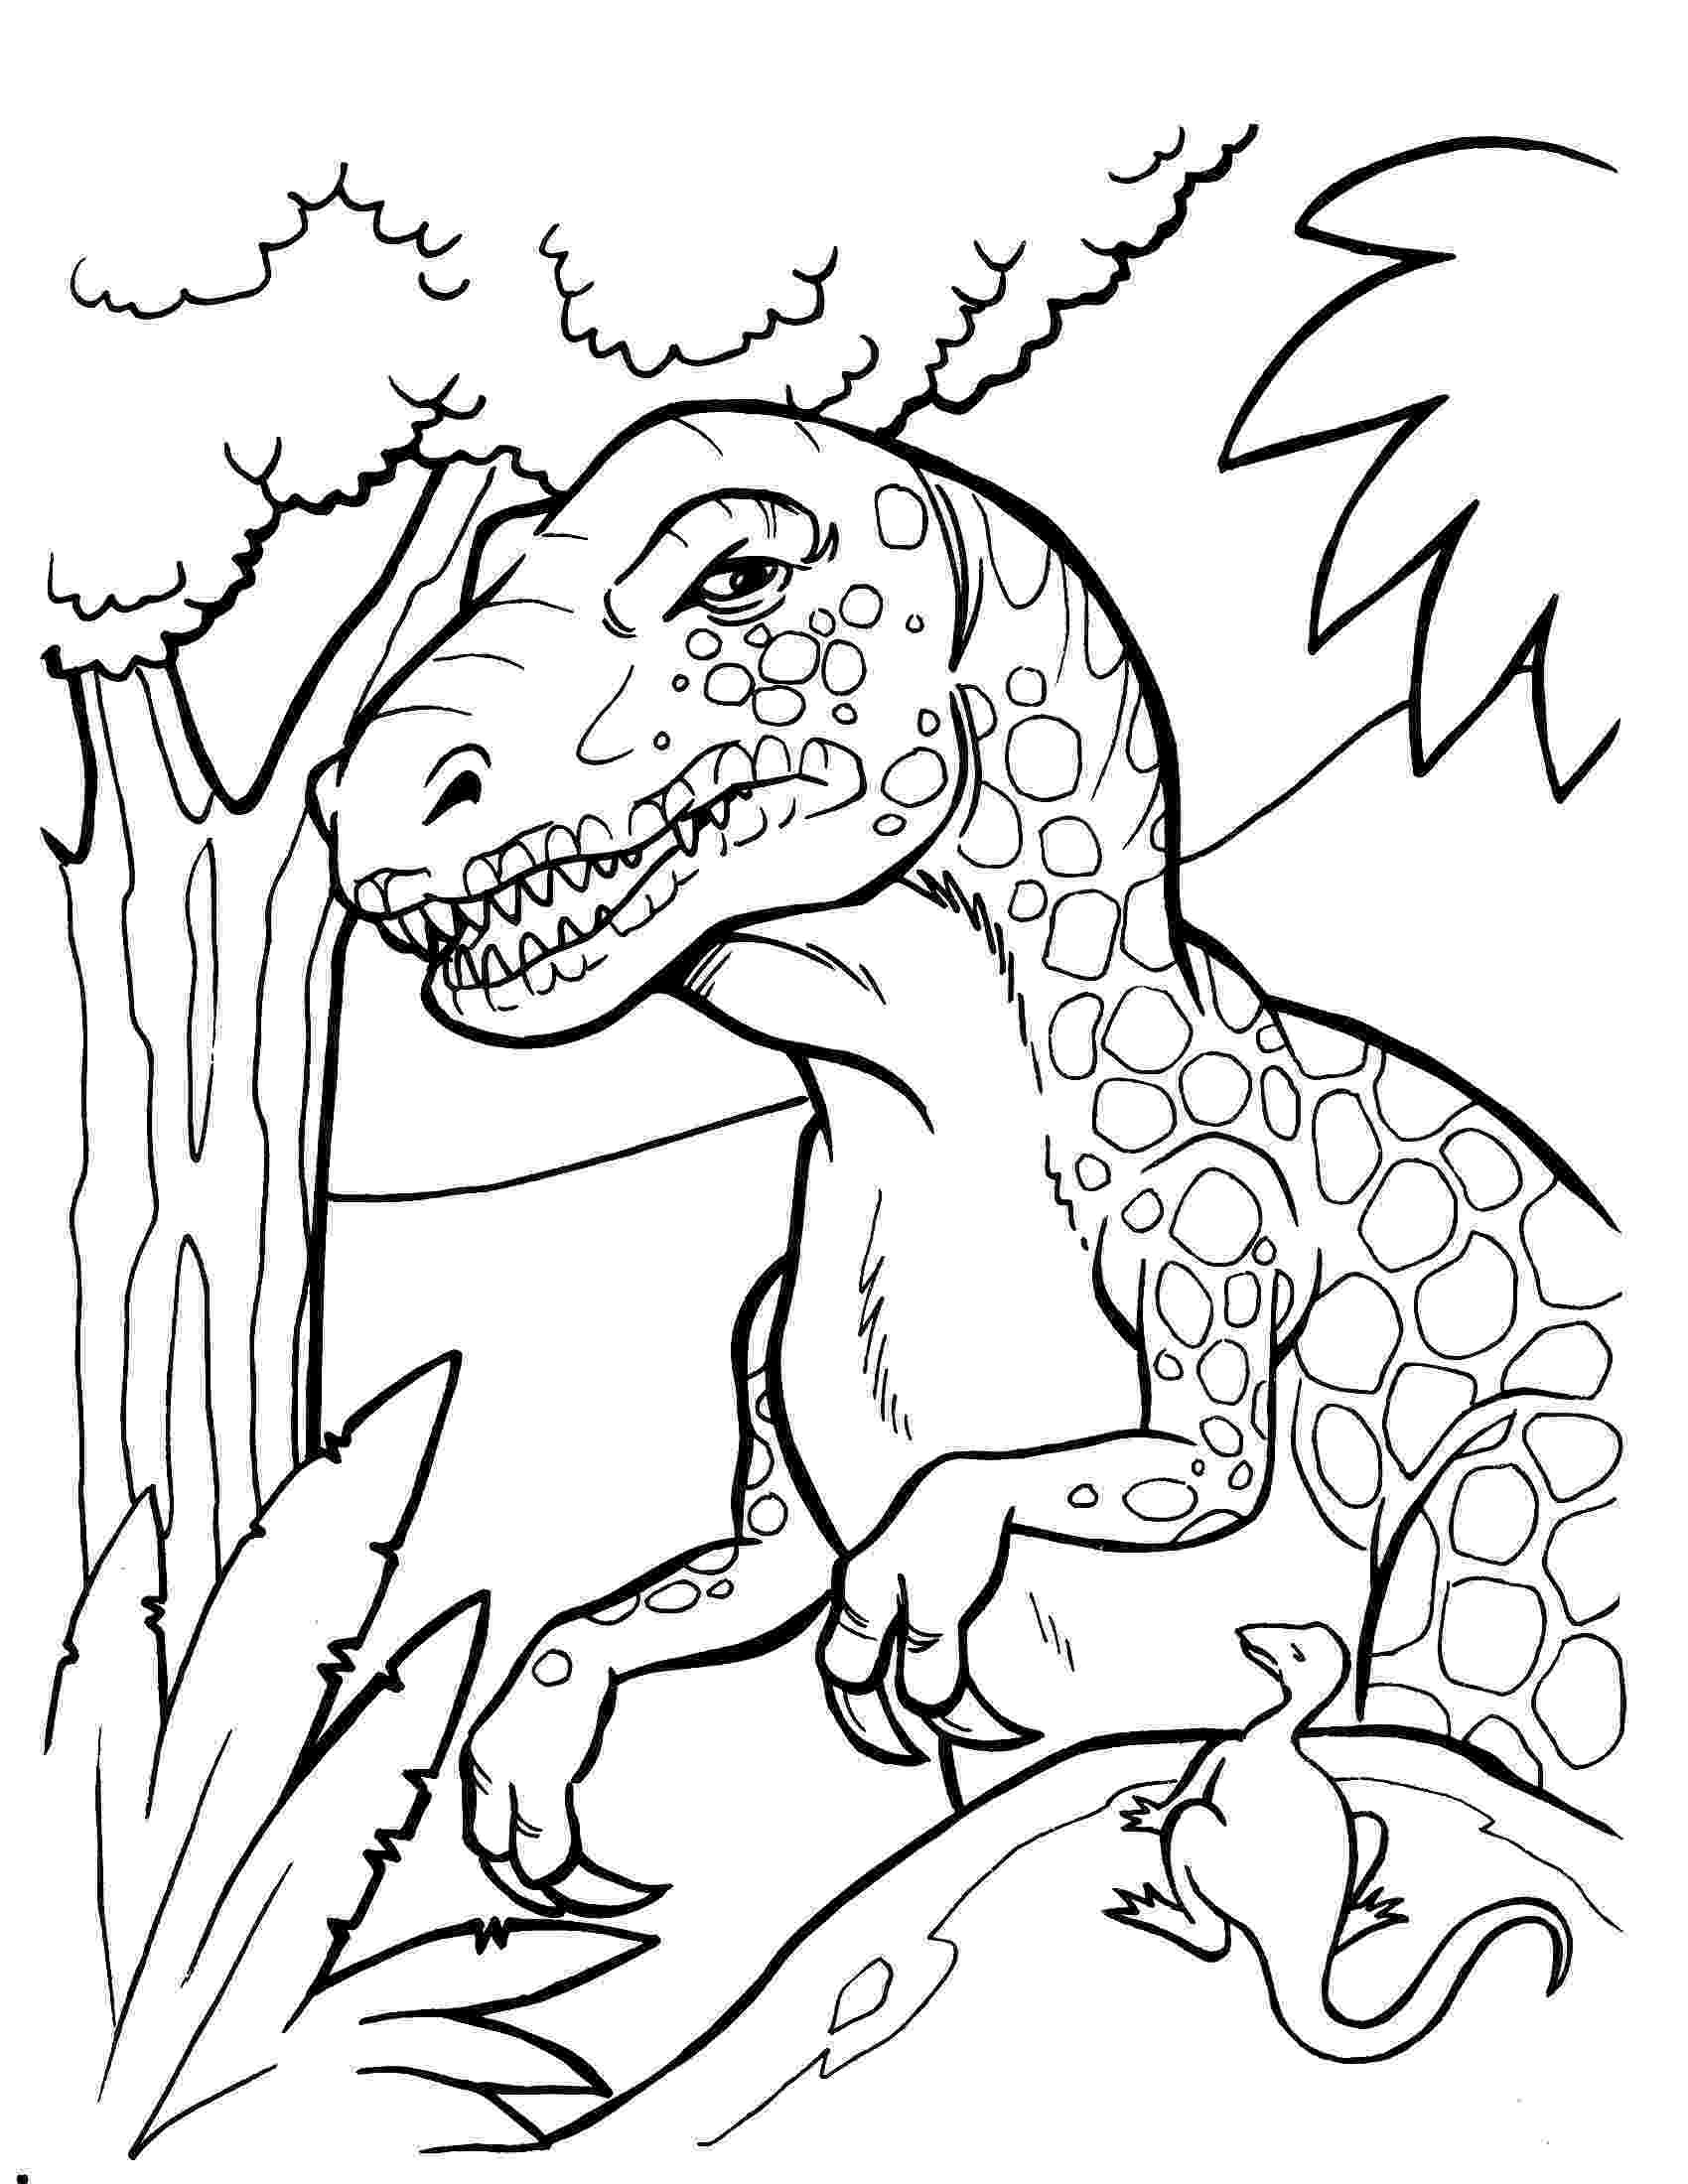 print dinosaur pictures dinosaur coloring pages to download and print for free dinosaur print pictures